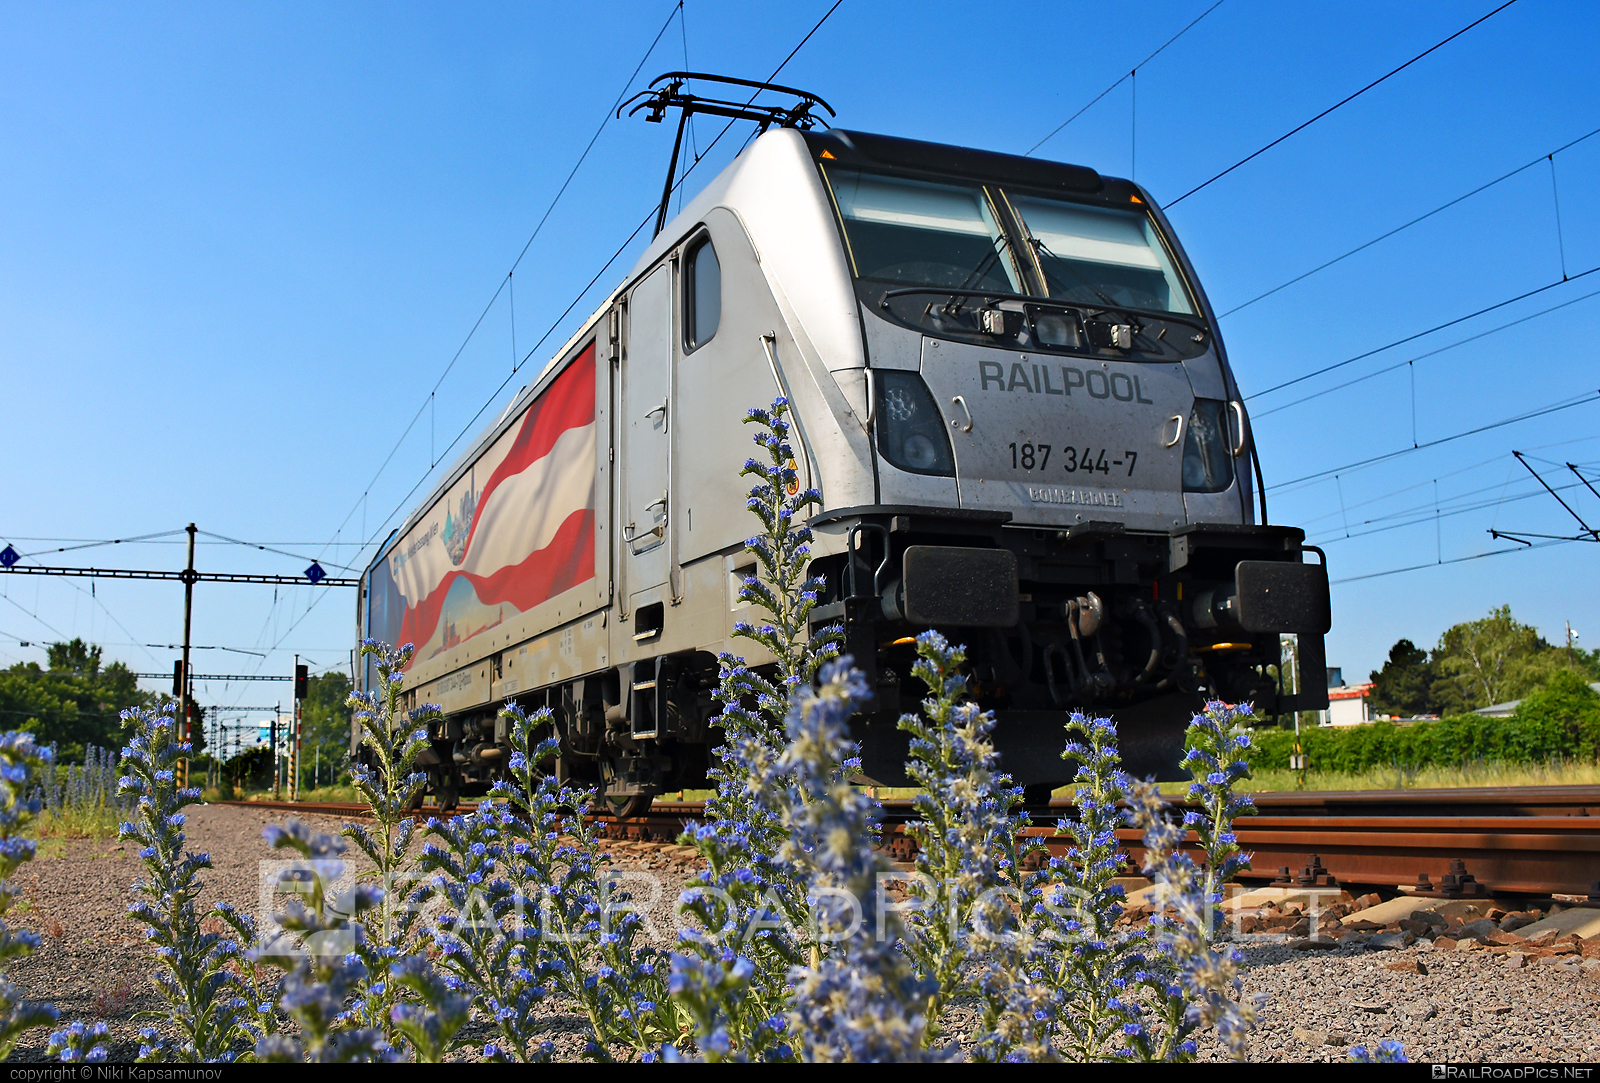 Bombardier TRAXX F160 AC3 - 187 344-7 operated by ČD Cargo, a.s. #bombardier #bombardiertraxx #cdcargo #cdcargoniederlassungwien #cdcniederlassungwien #railpool #railpoolgmbh #traxx #traxxf160 #traxxf160ac #traxxf160ac3